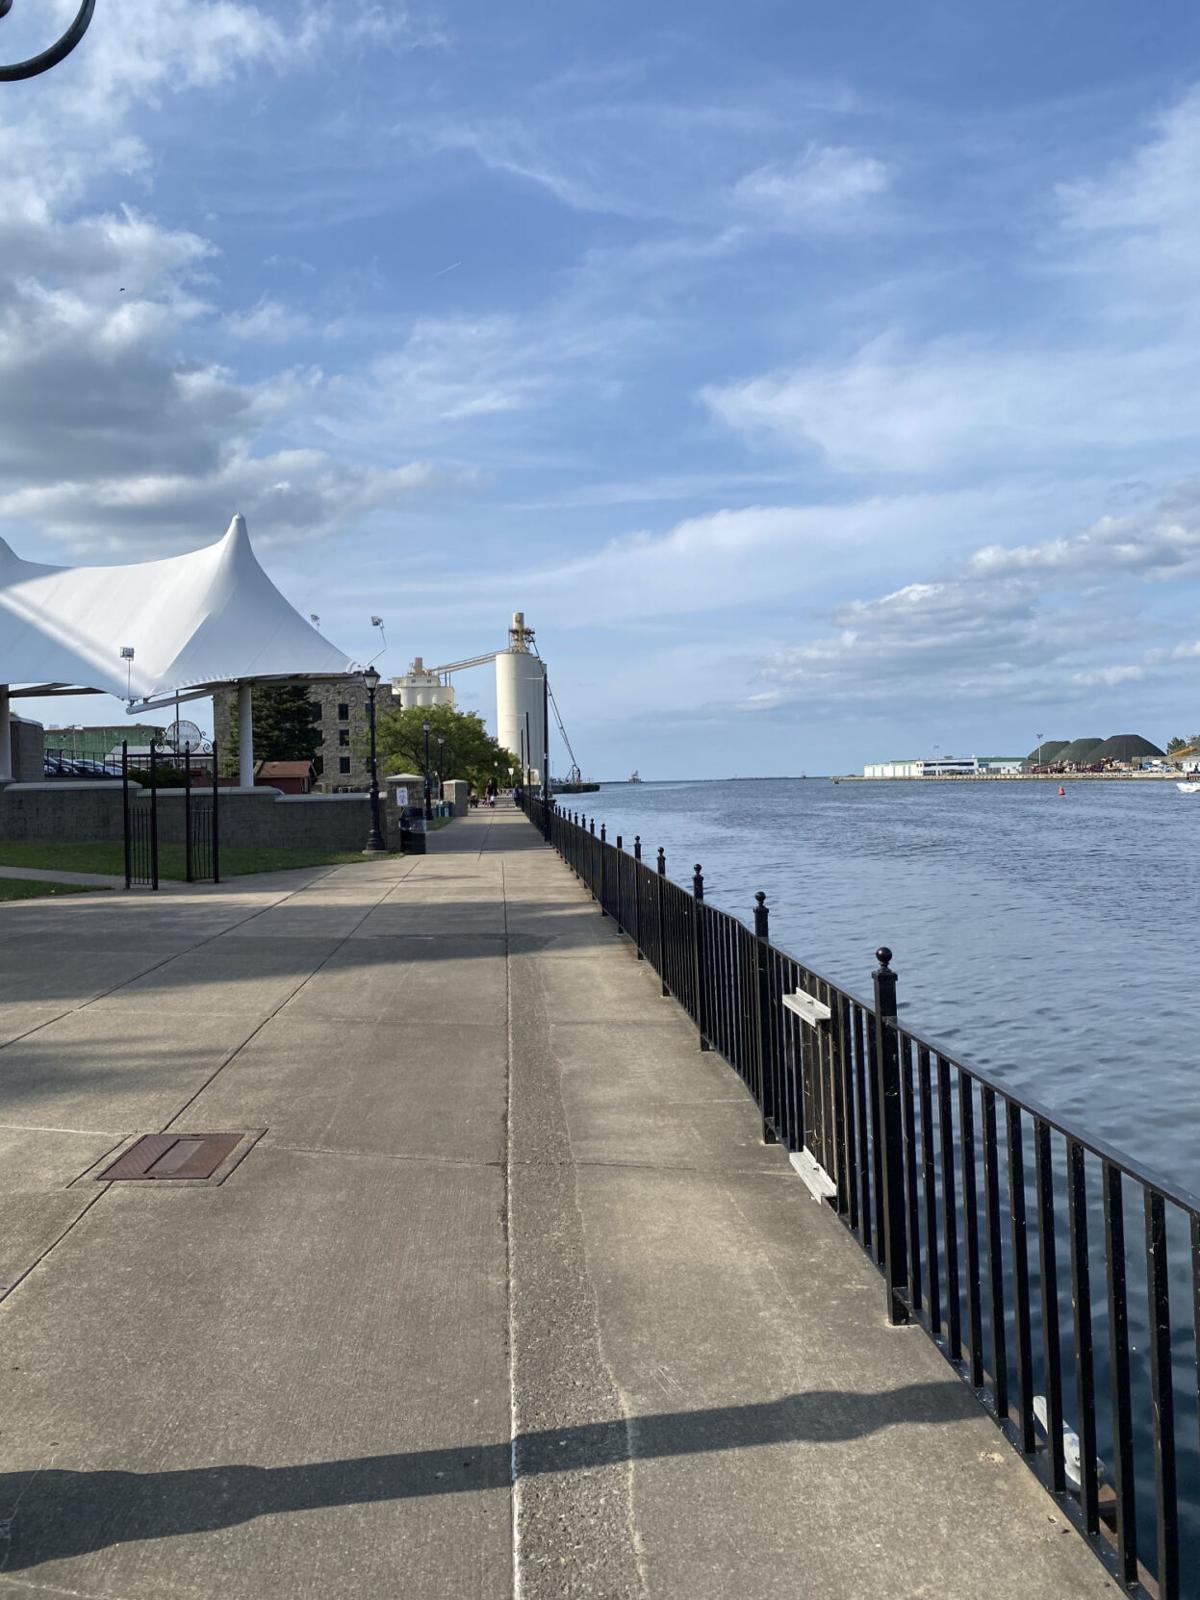 New Riverdock to be installed along West Linear Riverwalk